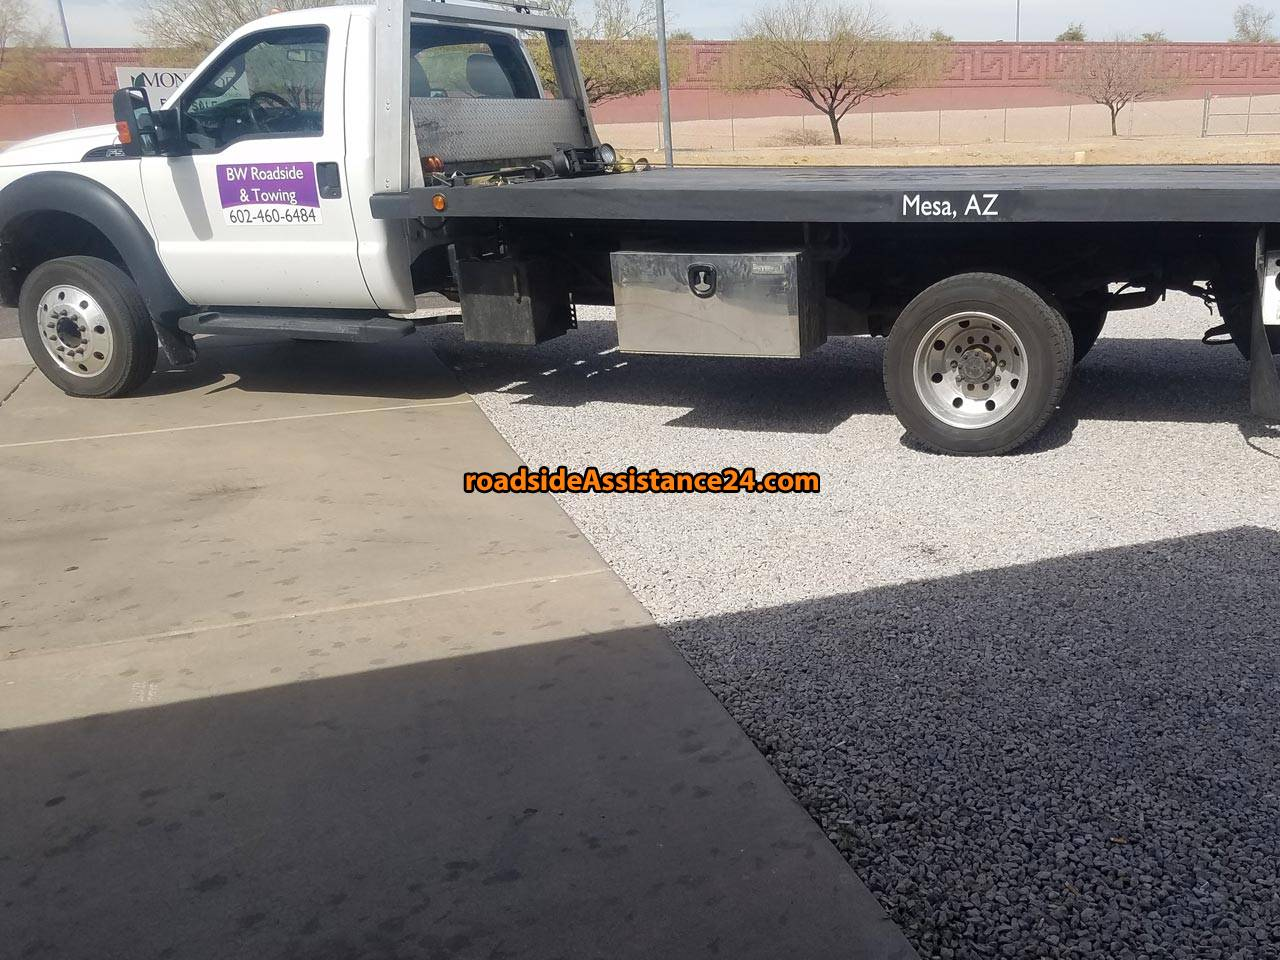 Roadside and towing in Mesa